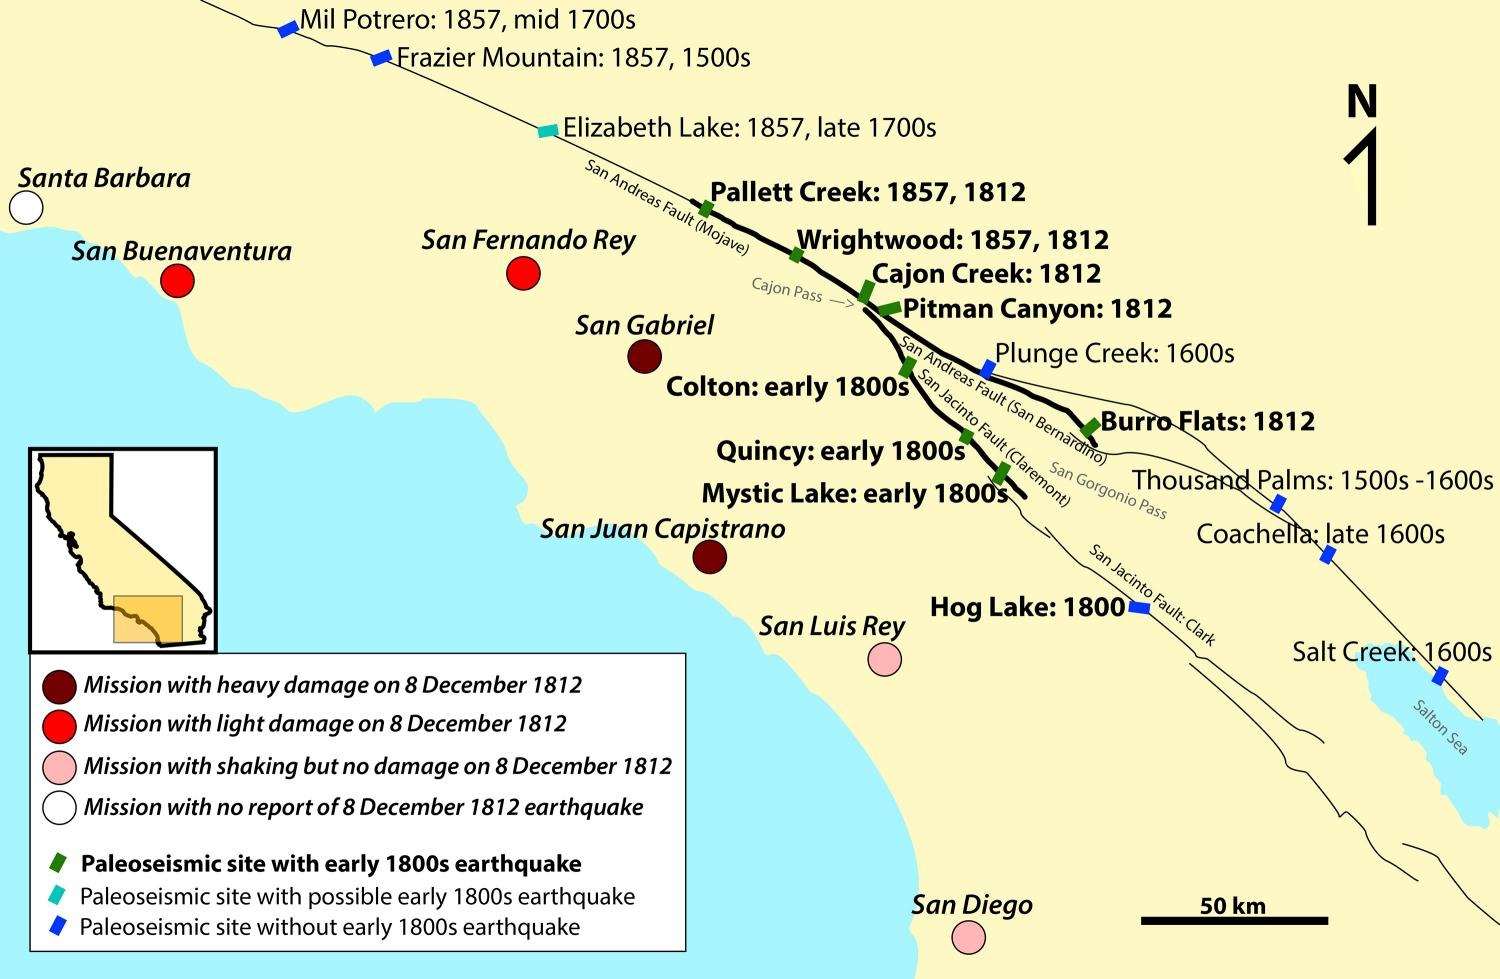 Model Suggests 1812 San Andreas Earthquake May Have Been Set Off By